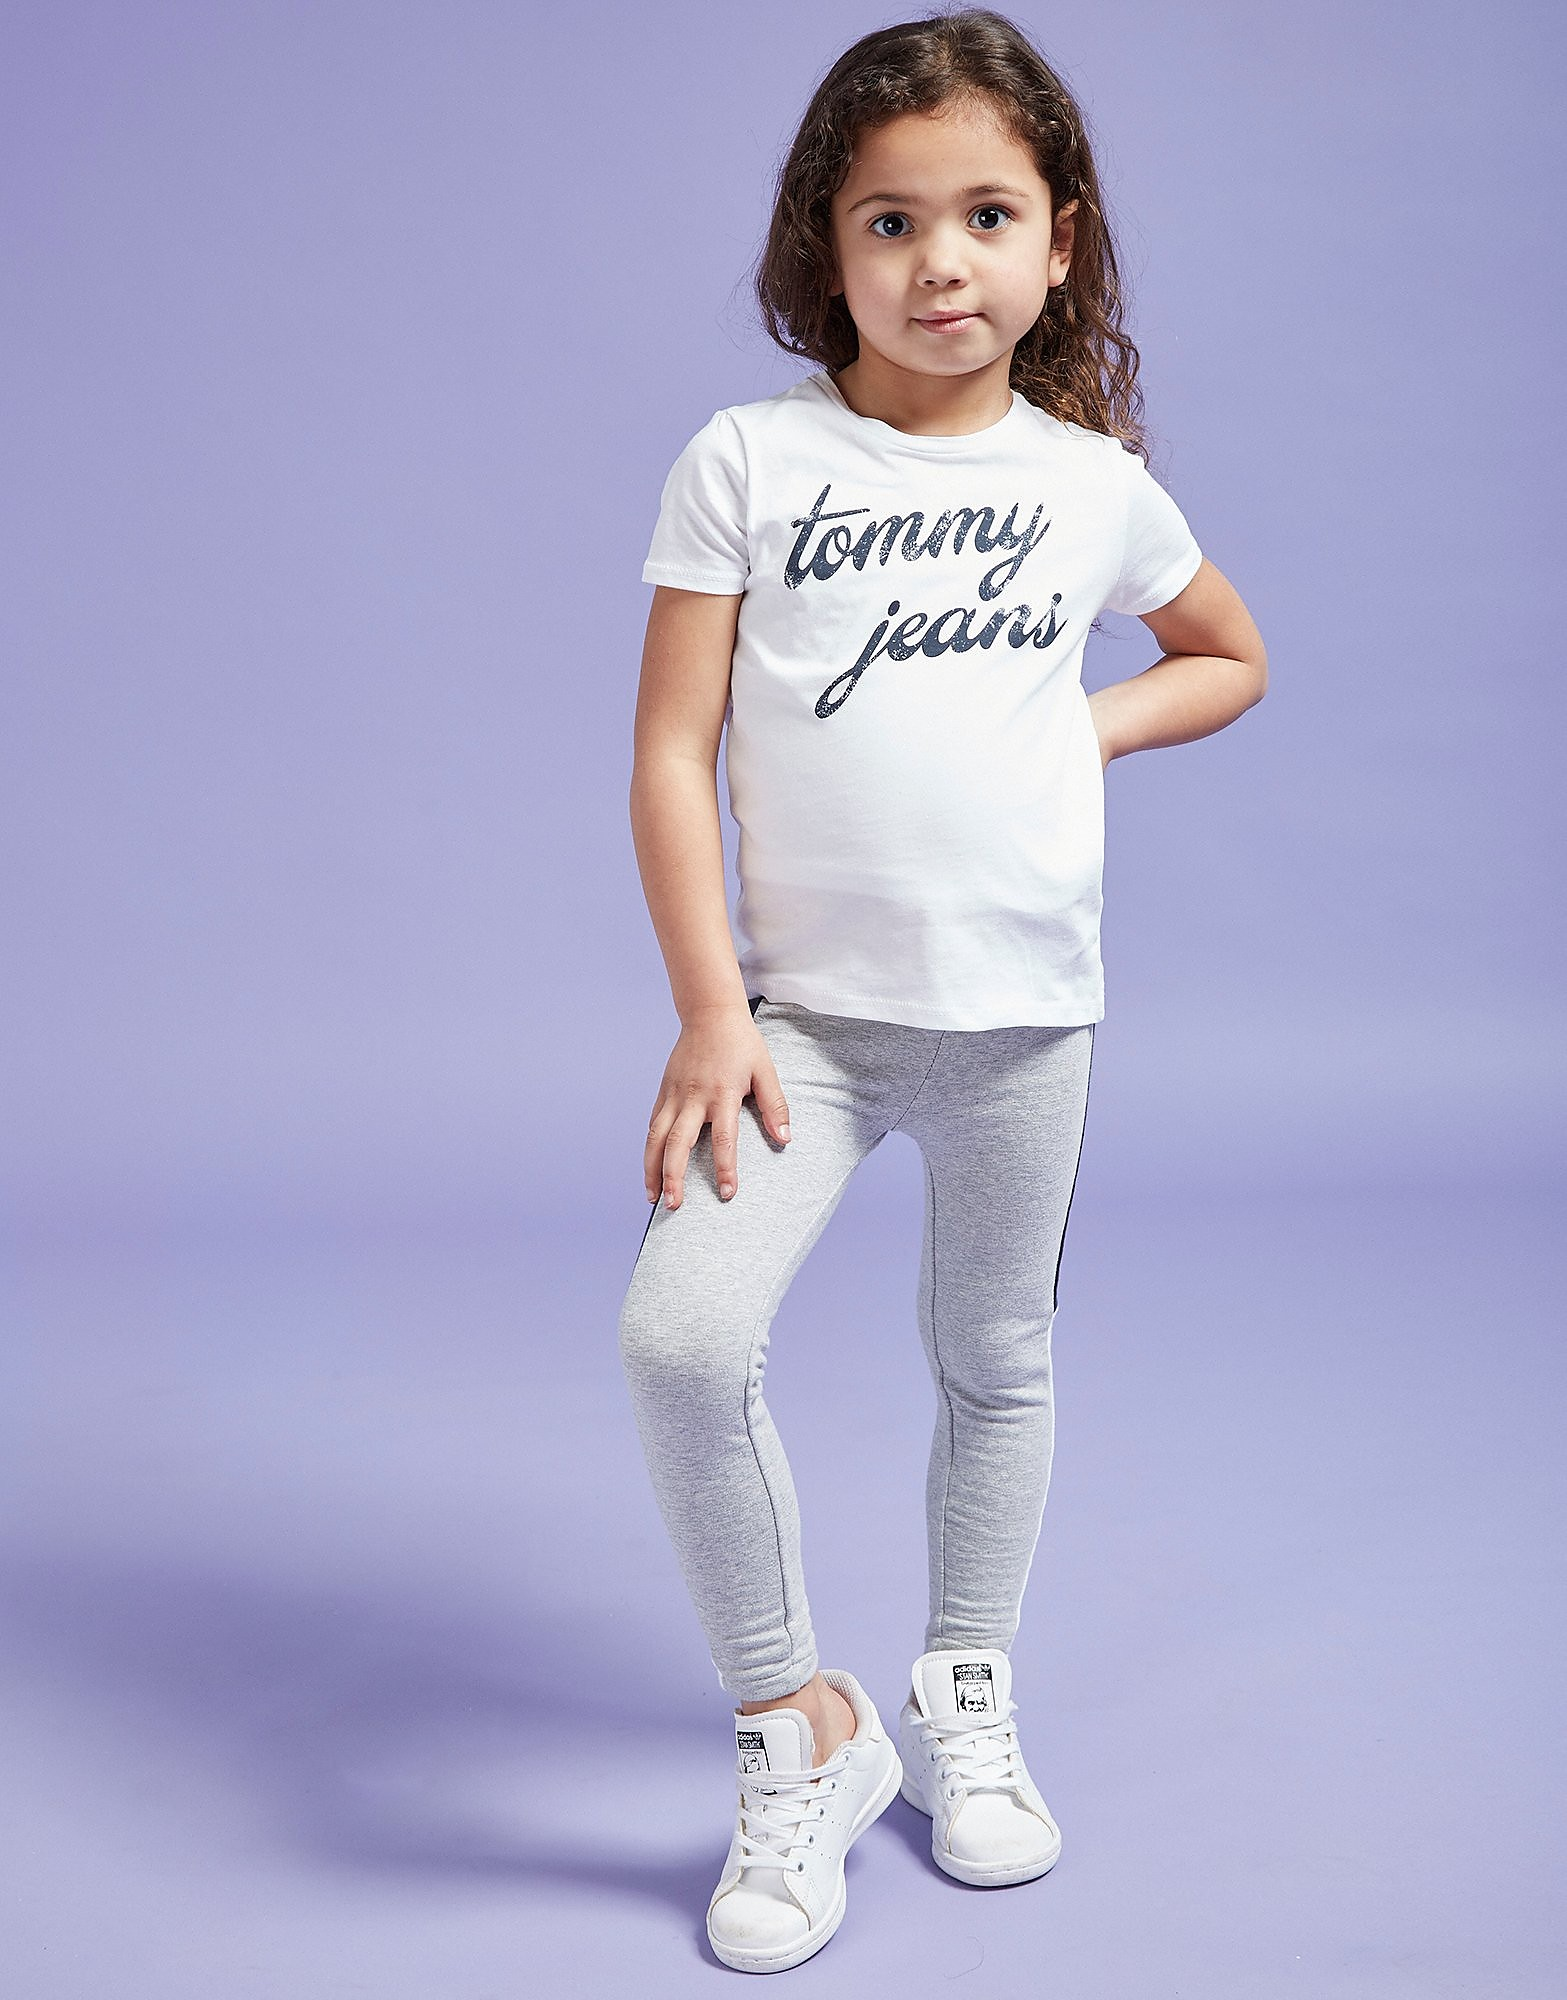 Tommy Hilfiger Girls' Logo Script T-Shirt Children